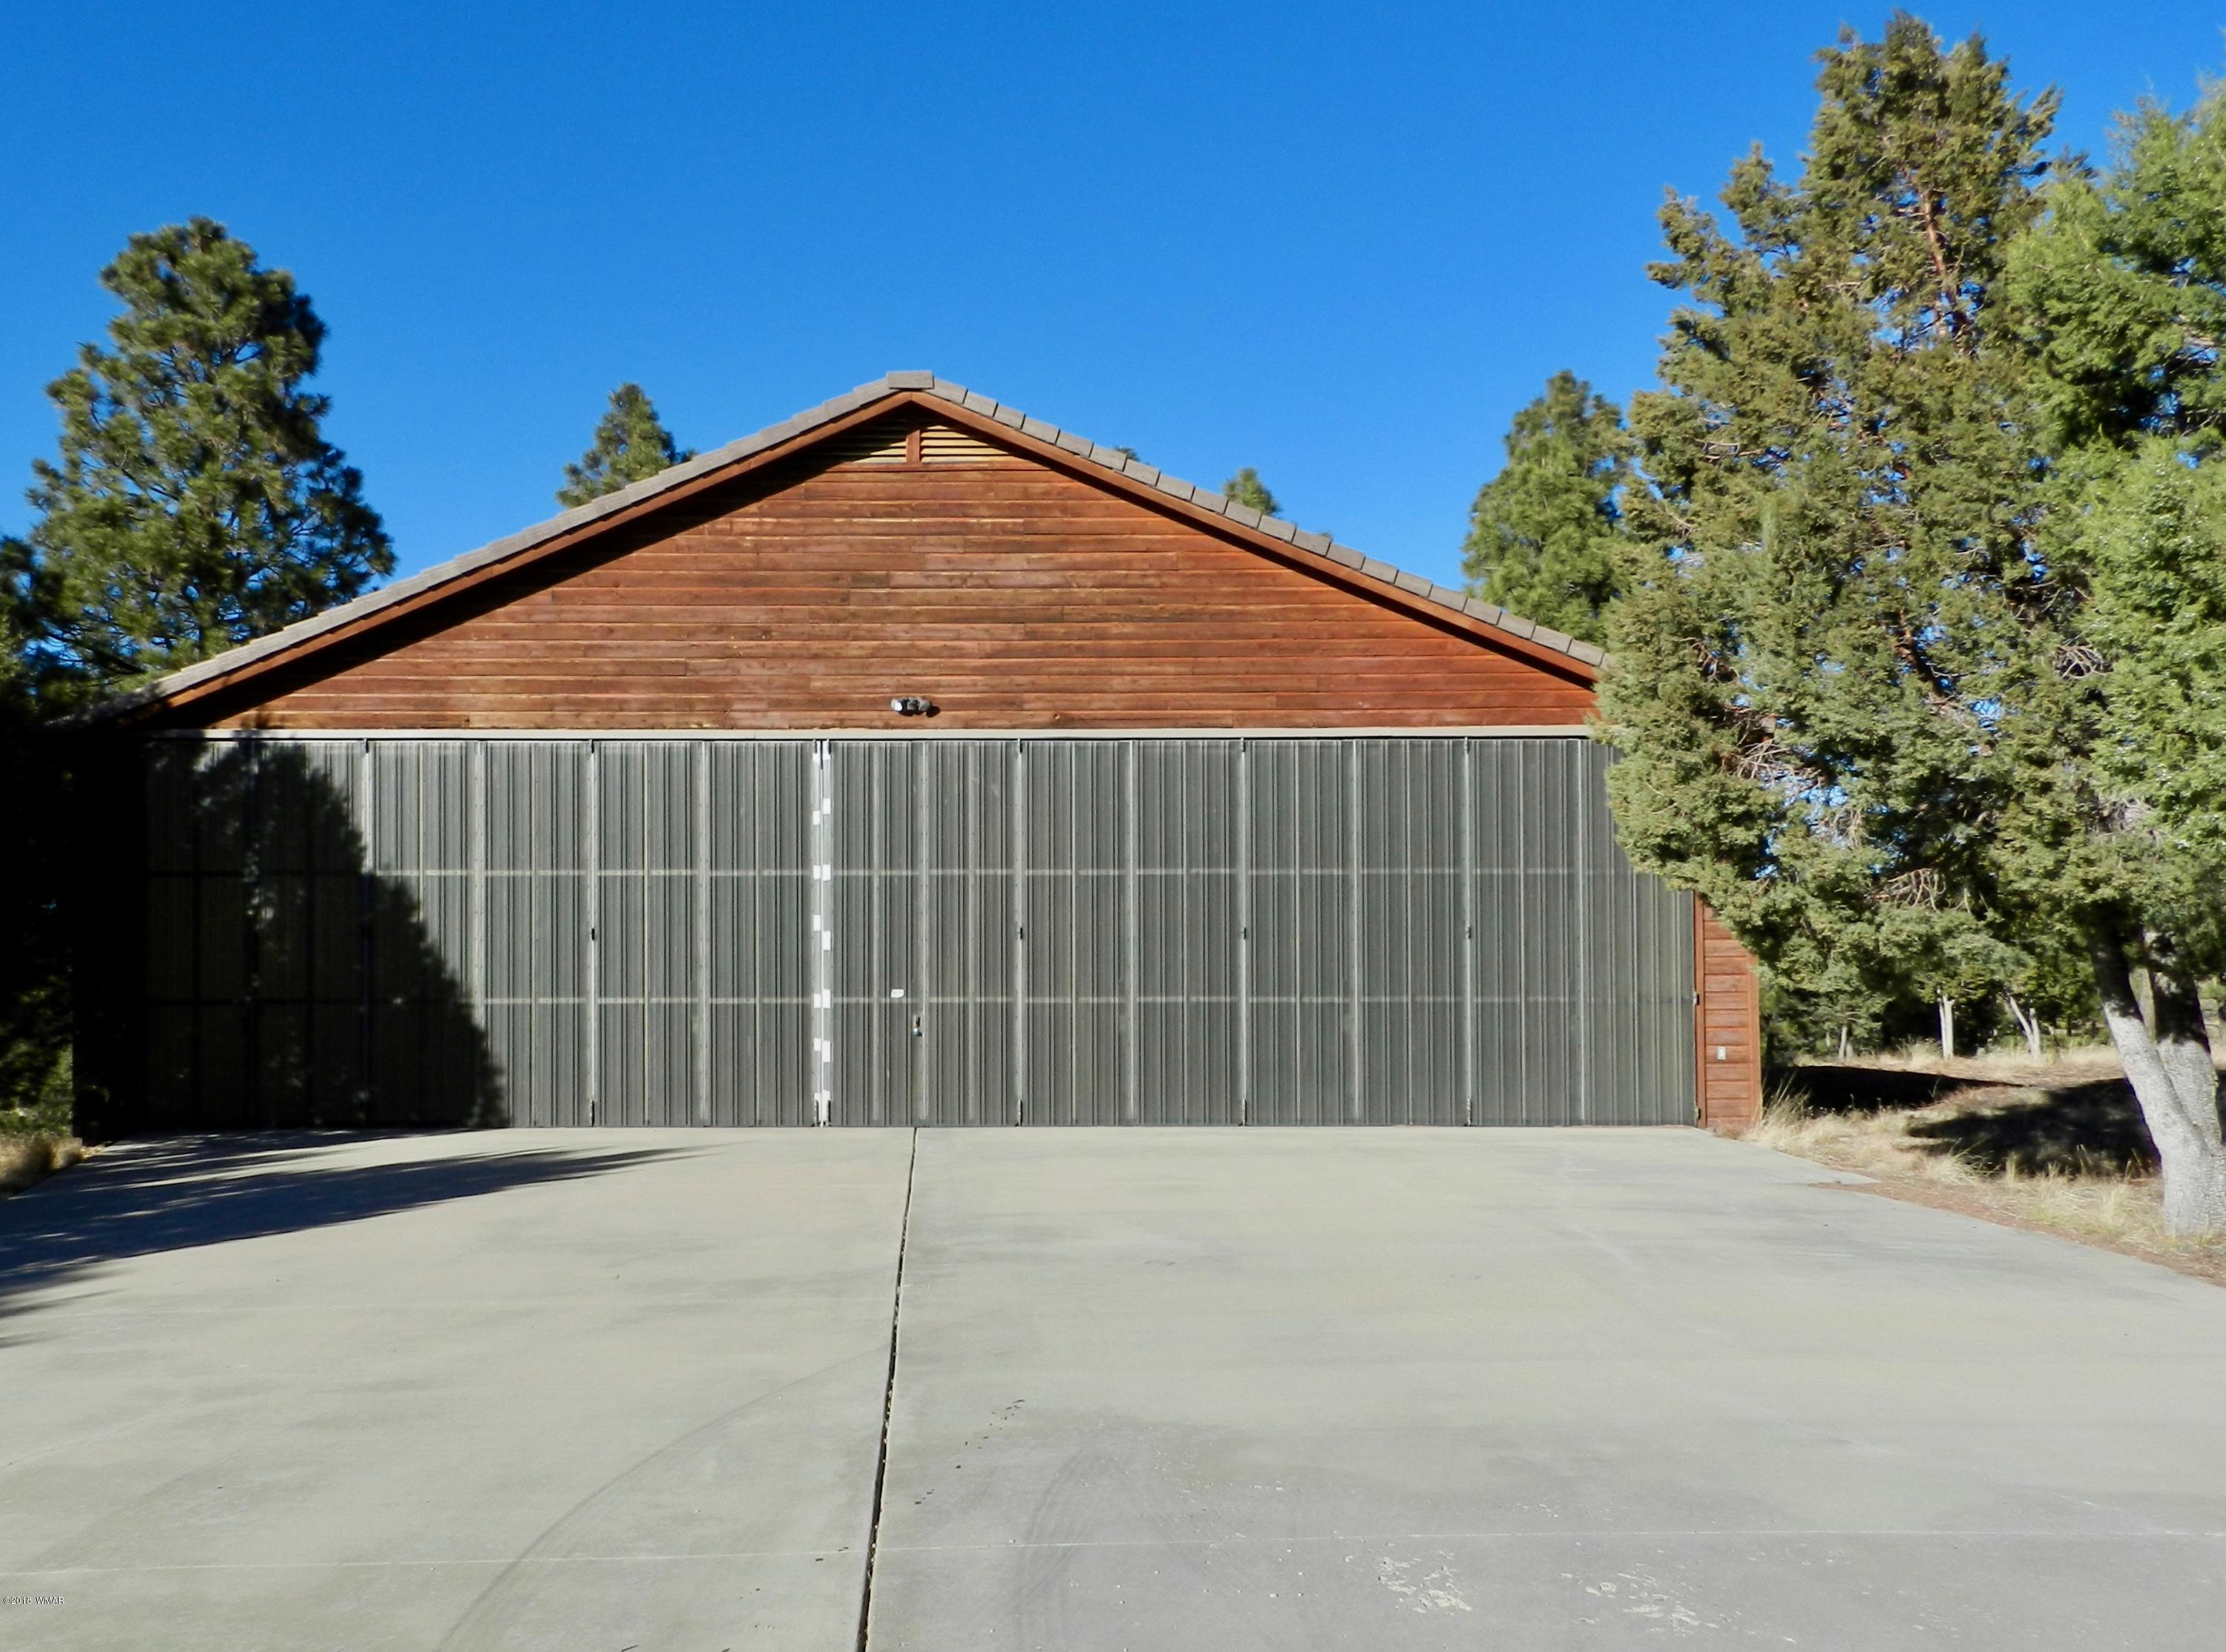 Pilots, build your mountain cabin retreat next to the existing 50' x 42' hangar with a 3/4 bath at the prestigious Mogollon Airpark (AZ82). Opaque stacking hanger doors provide plenty of natural light.  This heavily treed 0.42 acre VIEW lot has direct taxiway access. Utilities including electric, water and phone/DSL are available on the property. Need more room to build your dream home?  Adjacent corner parcel 206-29-110 is available.  Combine both properties to provide a 0.89 acre private home/hangar lot.  Local builder recommendations available. At 6,658 MSL it is the perfect fly-in escape from the summer heat or enjoy all 4 seasons. We look forward to seeing you at the Mogollon Air Park, Arizona's finest and friendliest residential aviation destination.